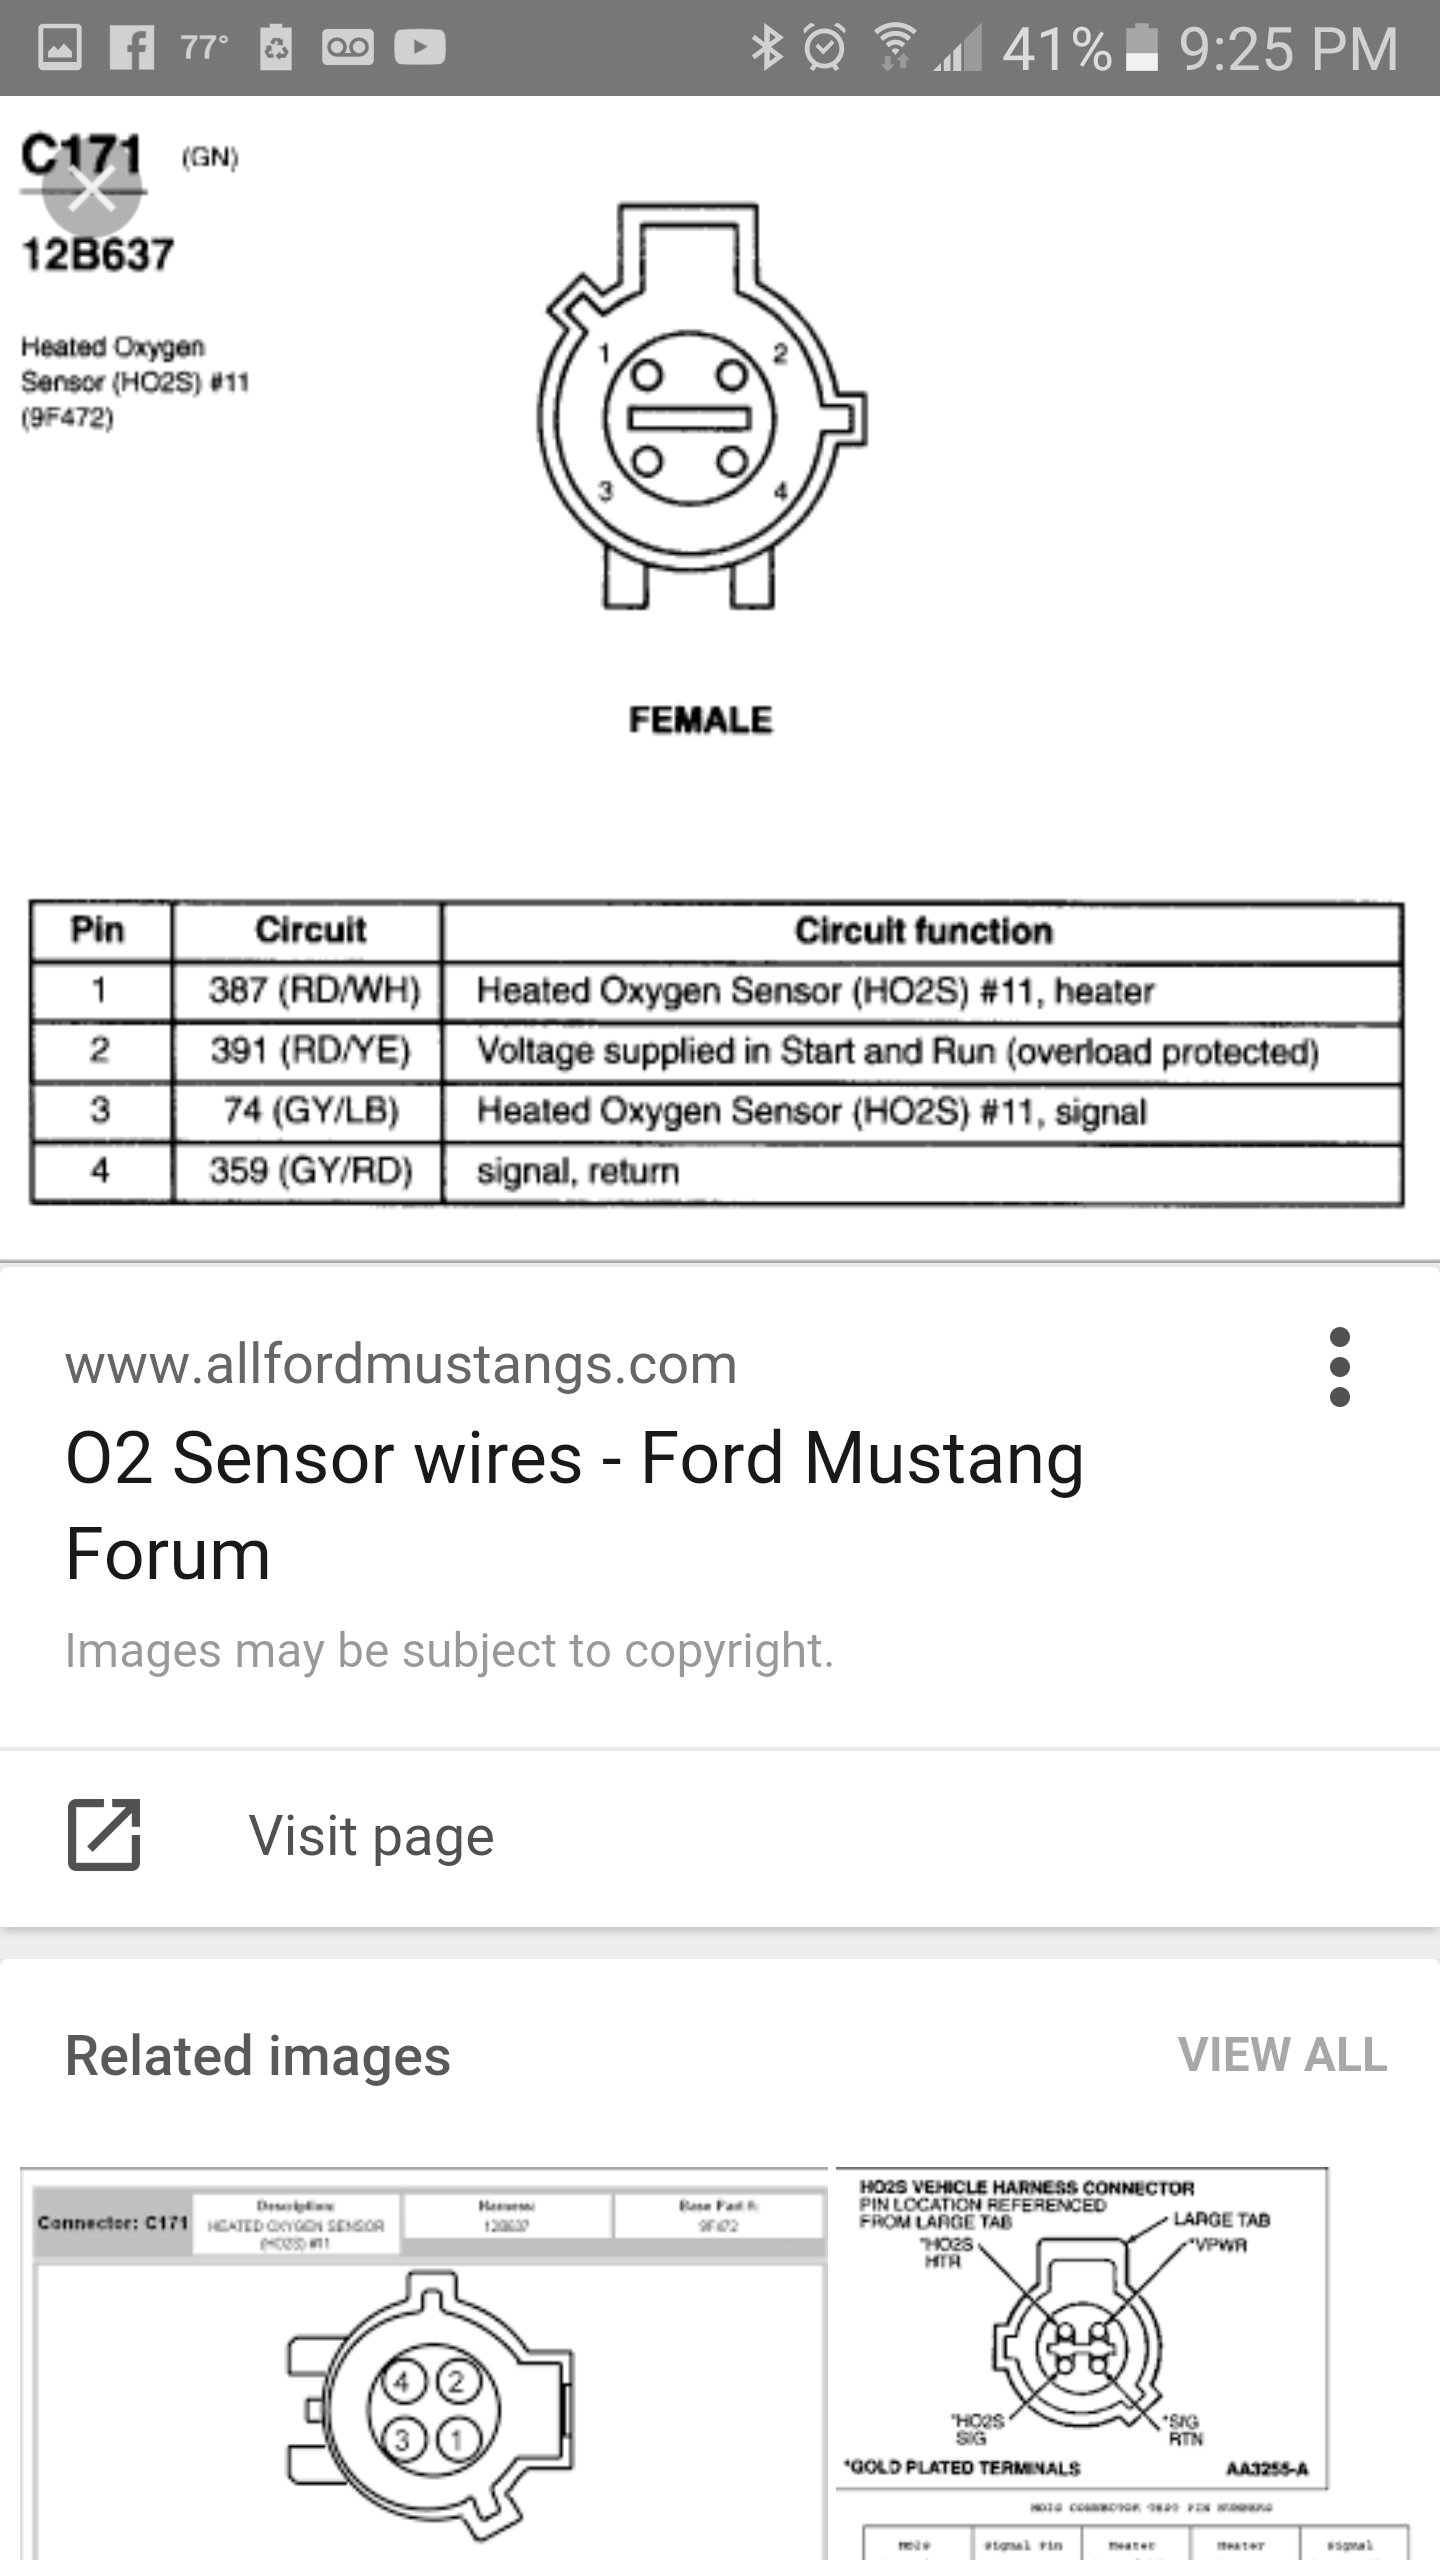 521666d1464745638 mustang v6 o2 sensor wiring harness pinched screenshot_20160530 212556 mustang v6 o2 sensor wiring harness pinched ford mustang forum o2 sensor wiring harness at n-0.co